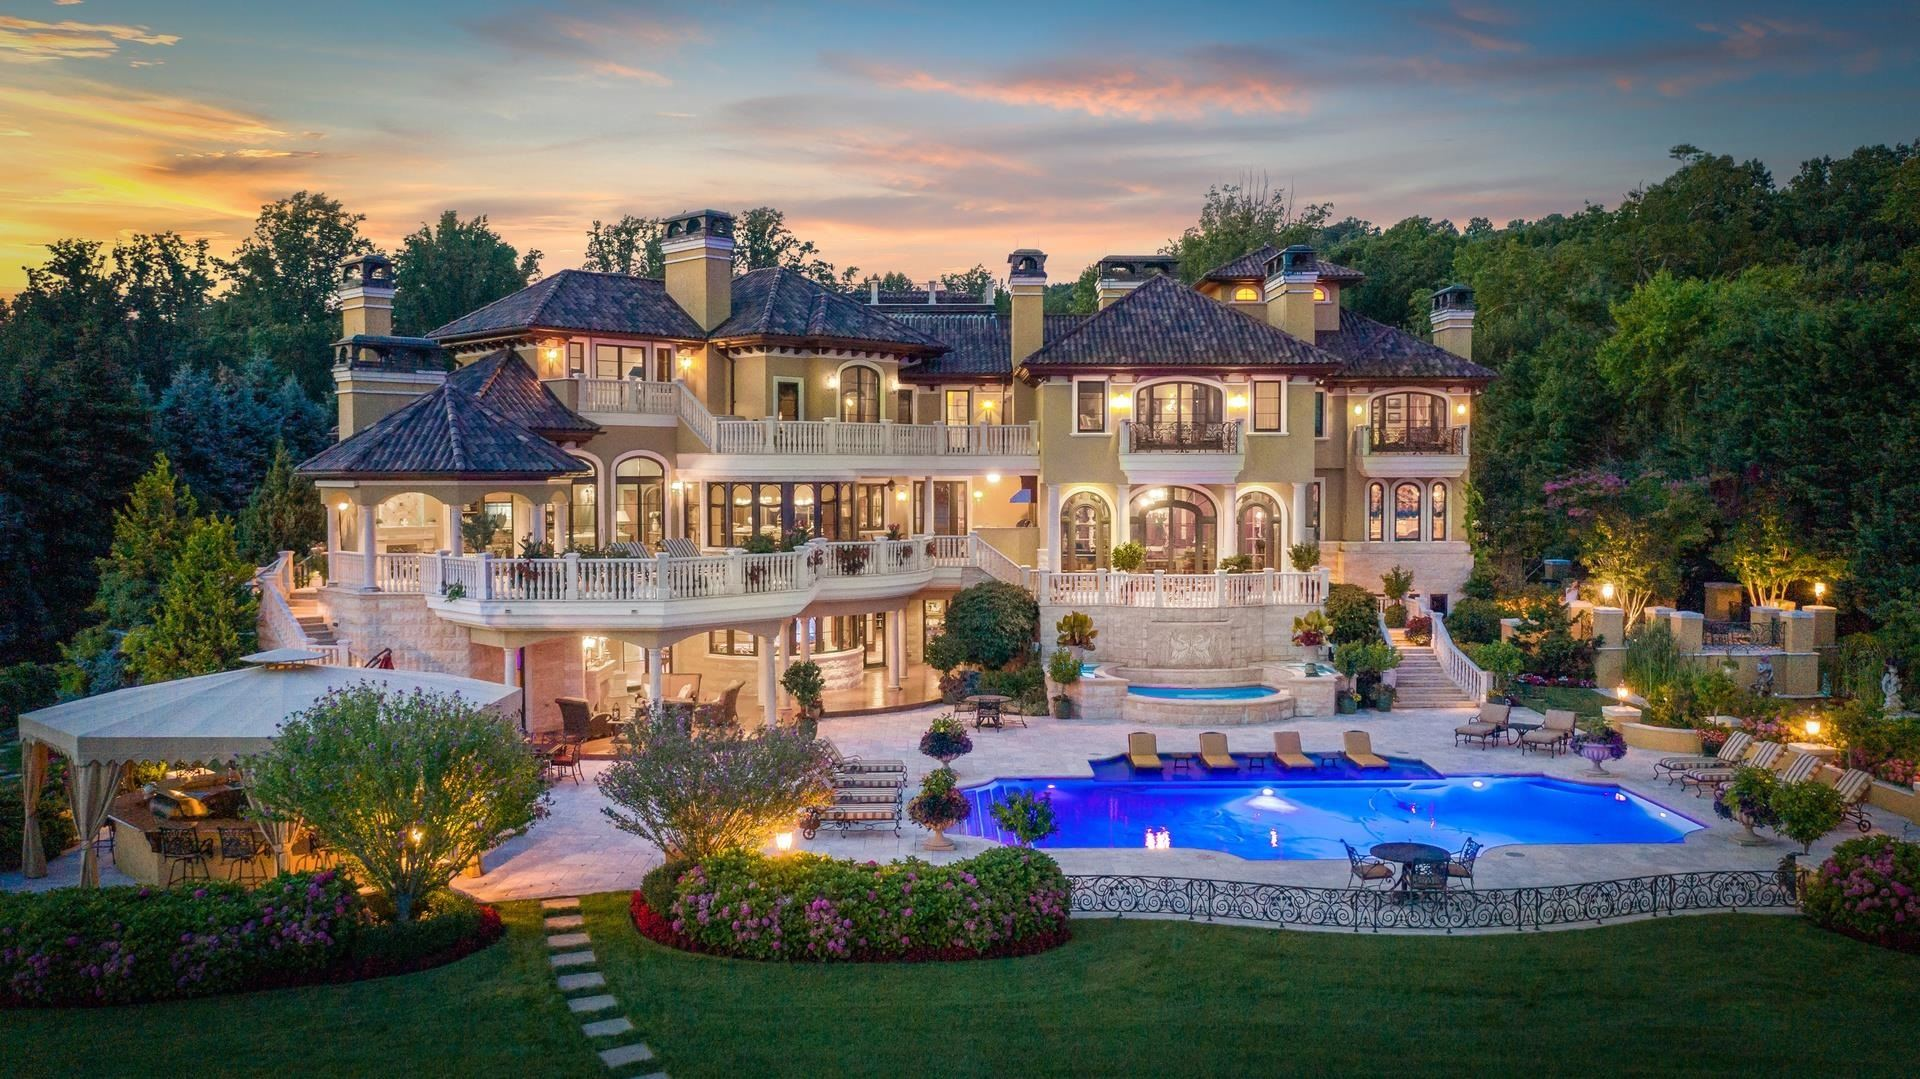 18 CLAY CT                                                                               Middletown Township                                                                      , NJ - $17,500,000